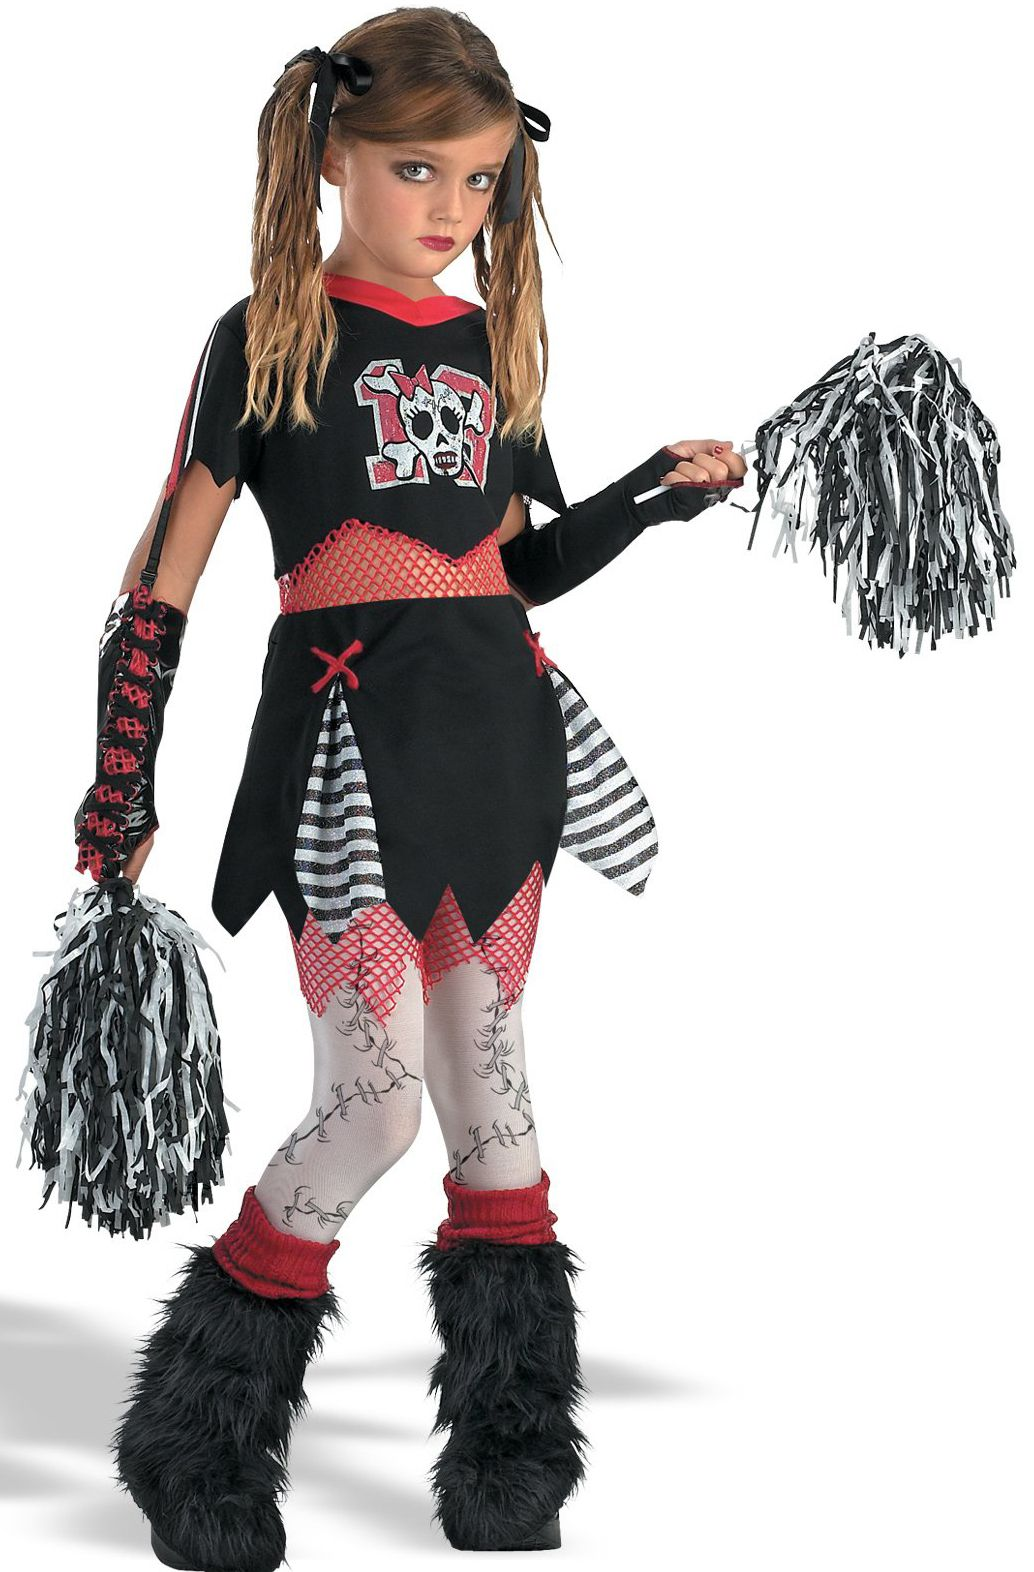 Cheerless Leader Child Costume This is the cheerleader Halloween costume with a horror twist. The black and white cheerleader dress includes a skull school ...  sc 1 st  Pinterest & Cheerless Leader Child Costume This is the cheerleader Halloween ...